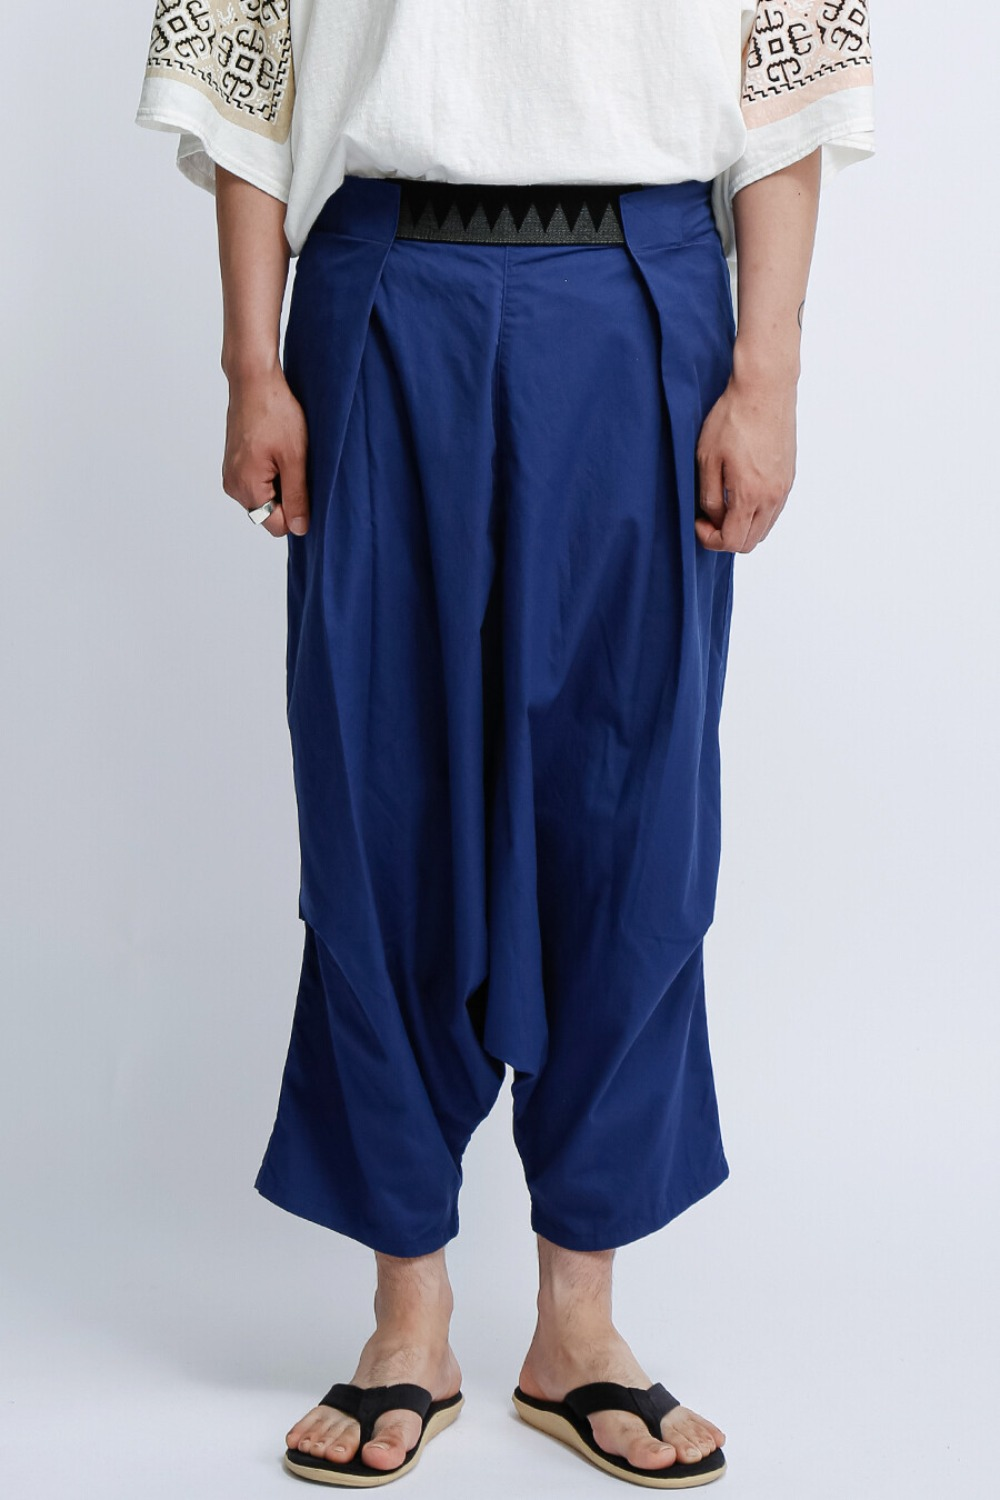 COMA BURBERRY COTTON EASY BEACH GO SALEL PANTS BLUE